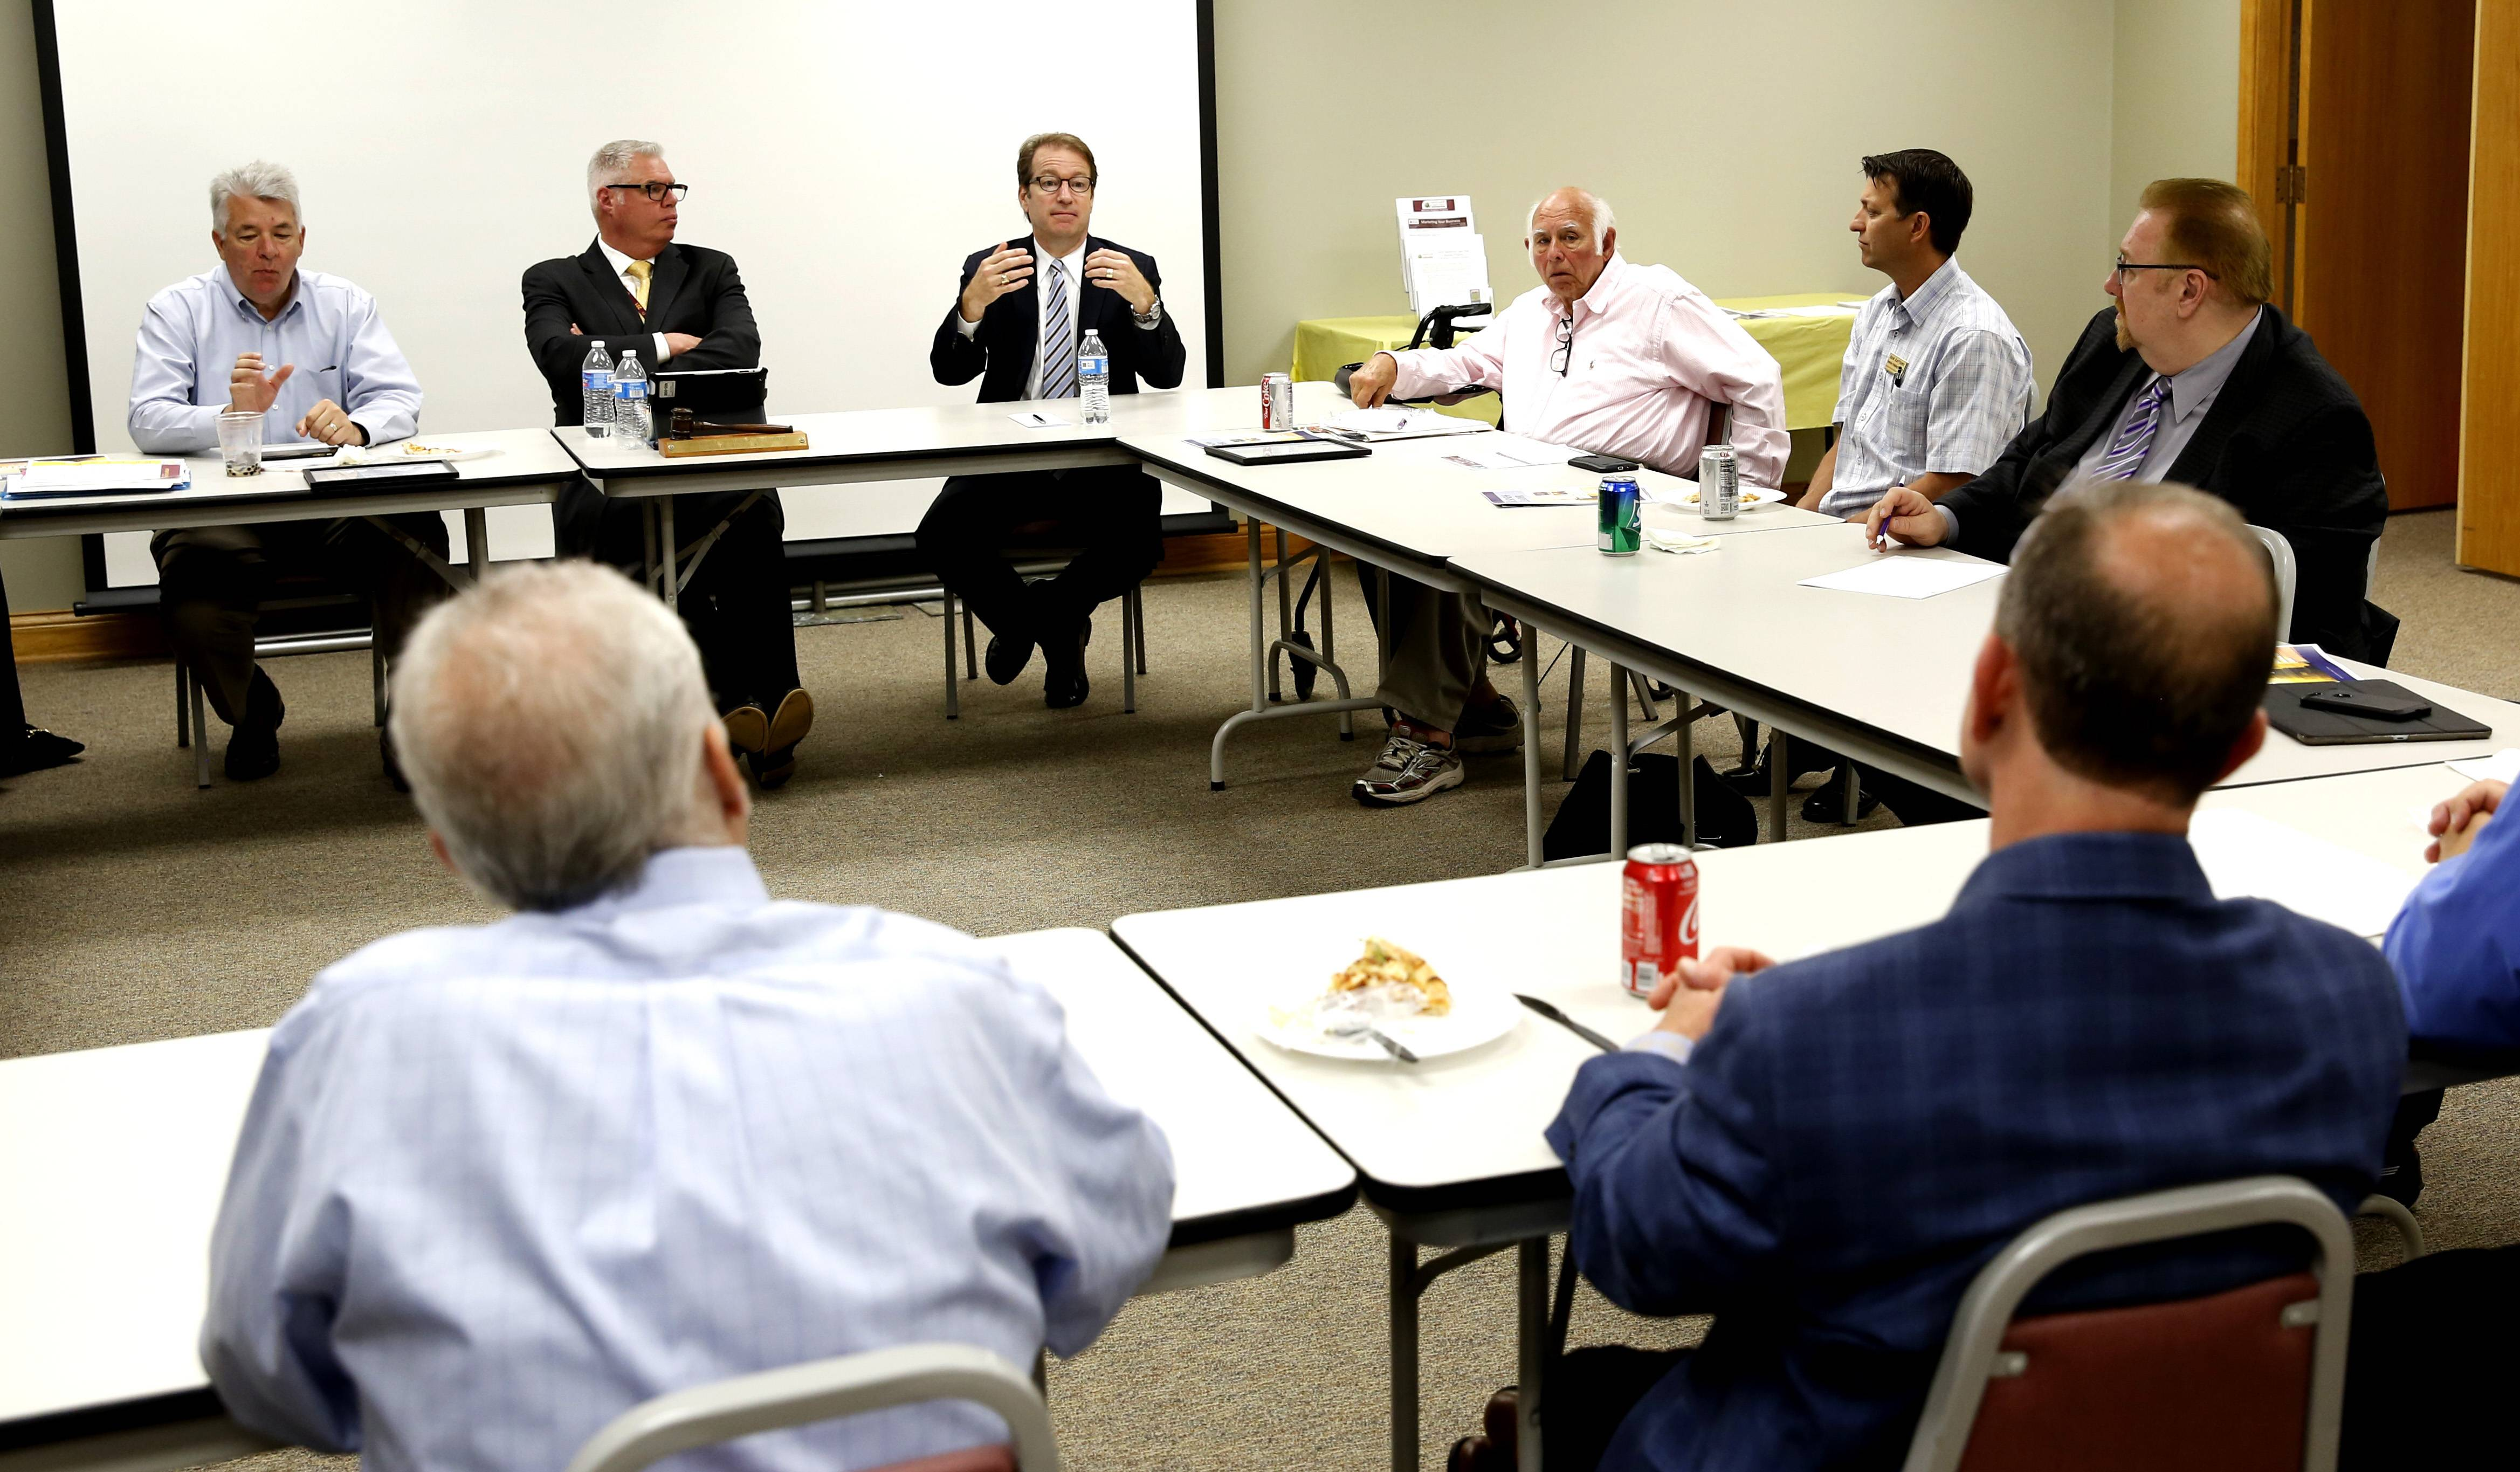 Congressman Peter Roskam listens to members of the Westmont Chamber of Commerce talk about their priorities.